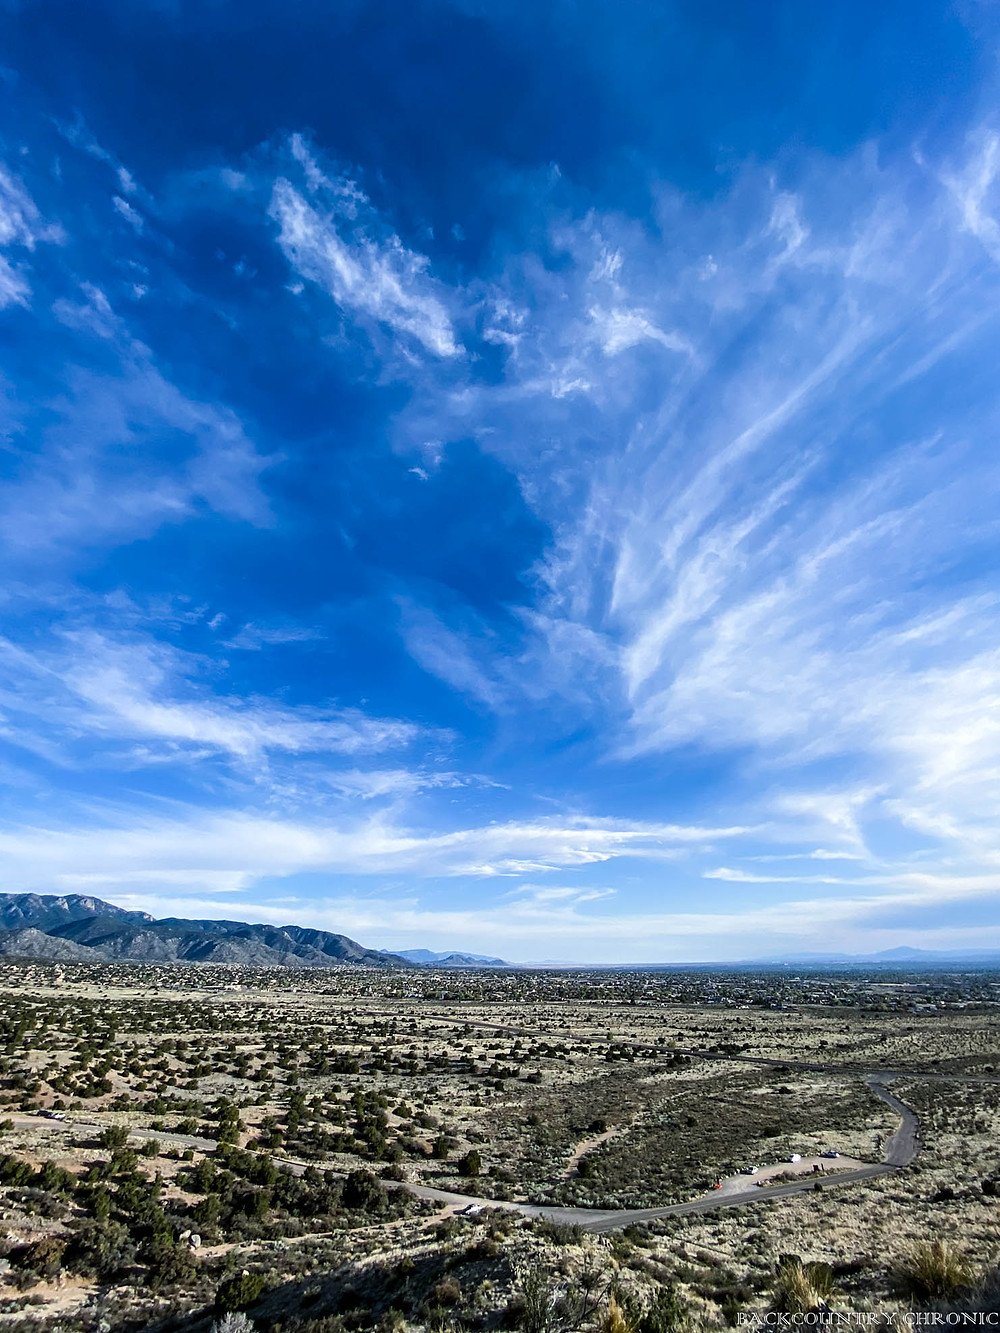 Looking south from the Sandia Mountain Wilderness